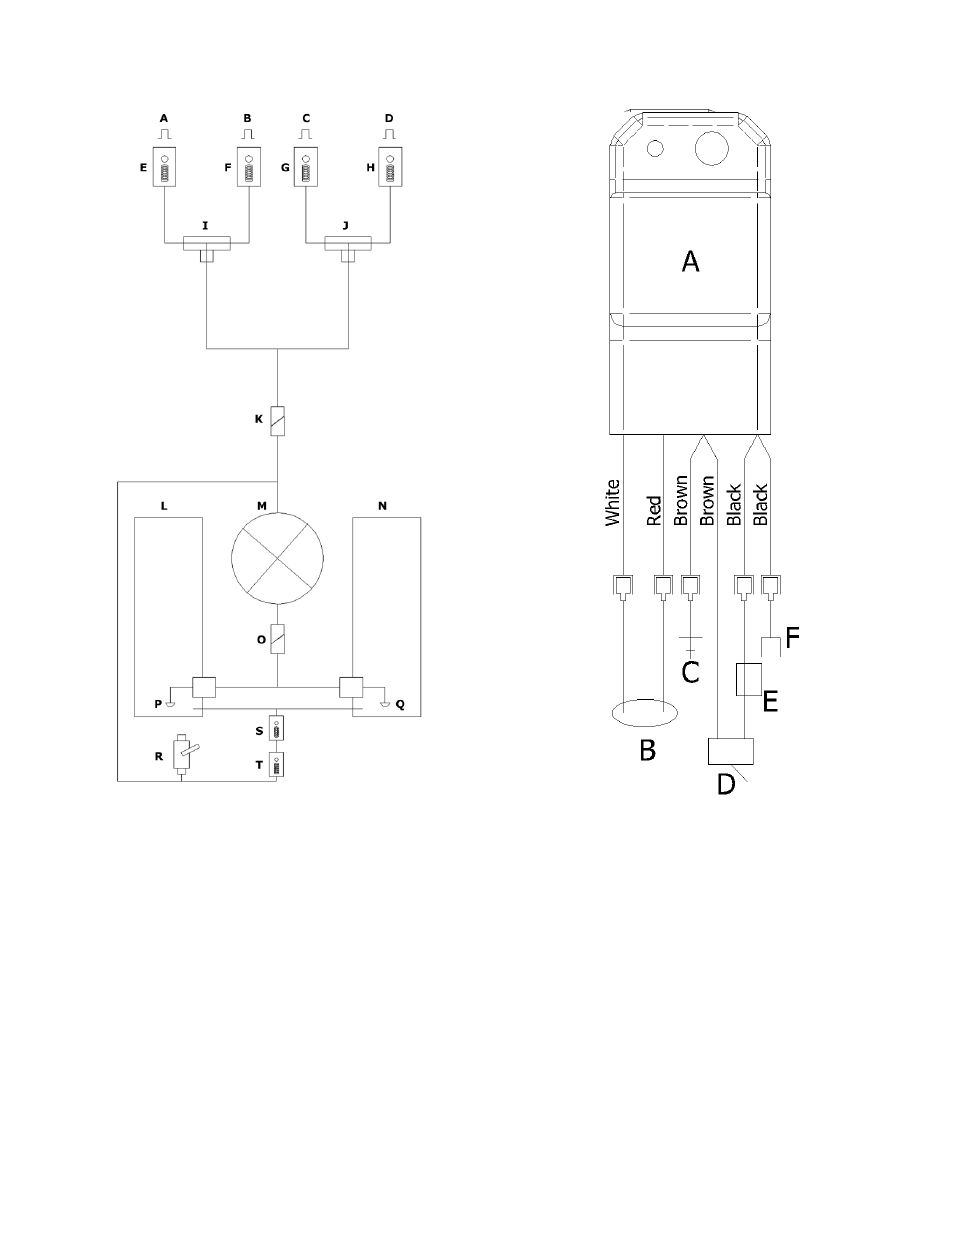 Plumbing and electric schematics | PermaGreen Triumph Spreader Sprayer User  Manual | Page 42 / 45